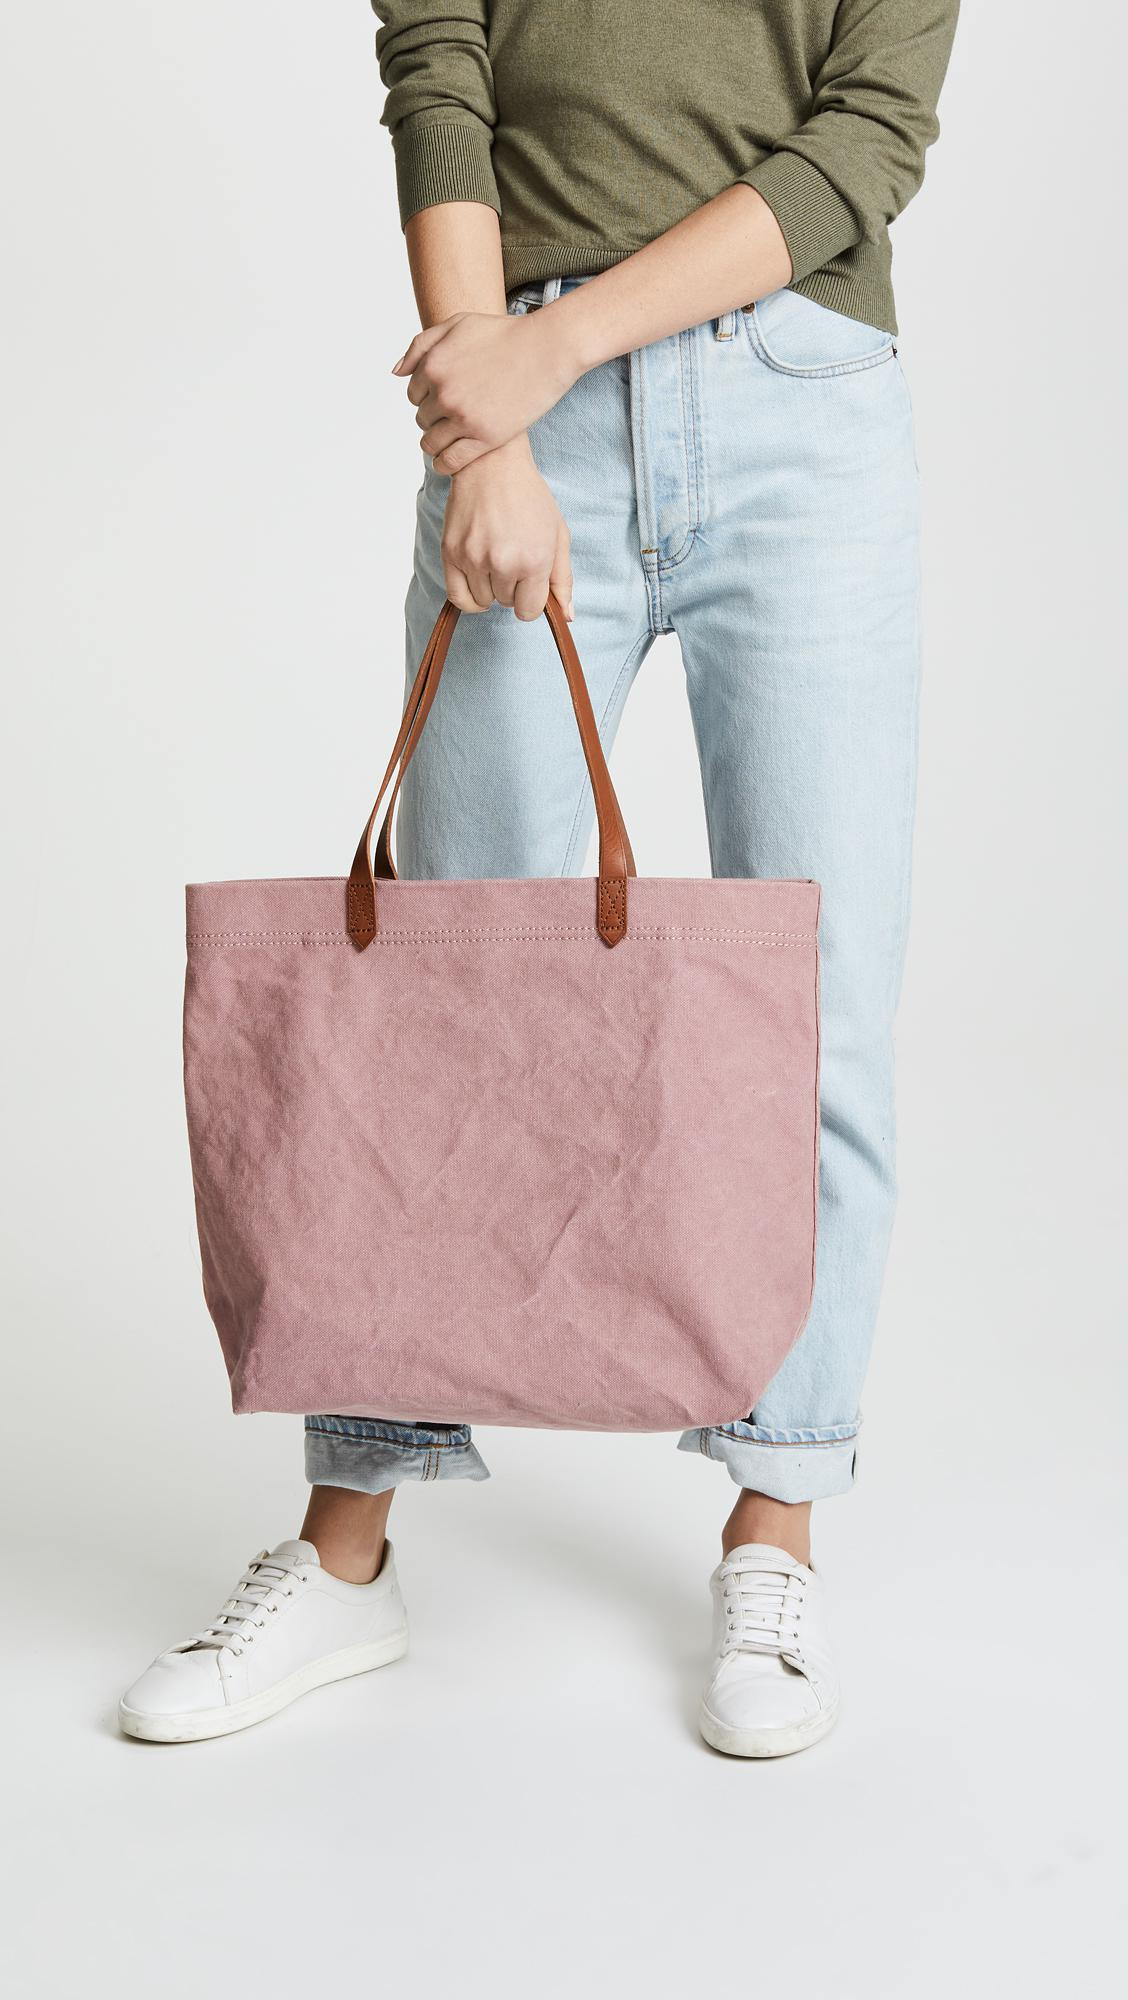 Lyst - Madewell Canvas Transport Tote in Pink 816e393e5e6a5